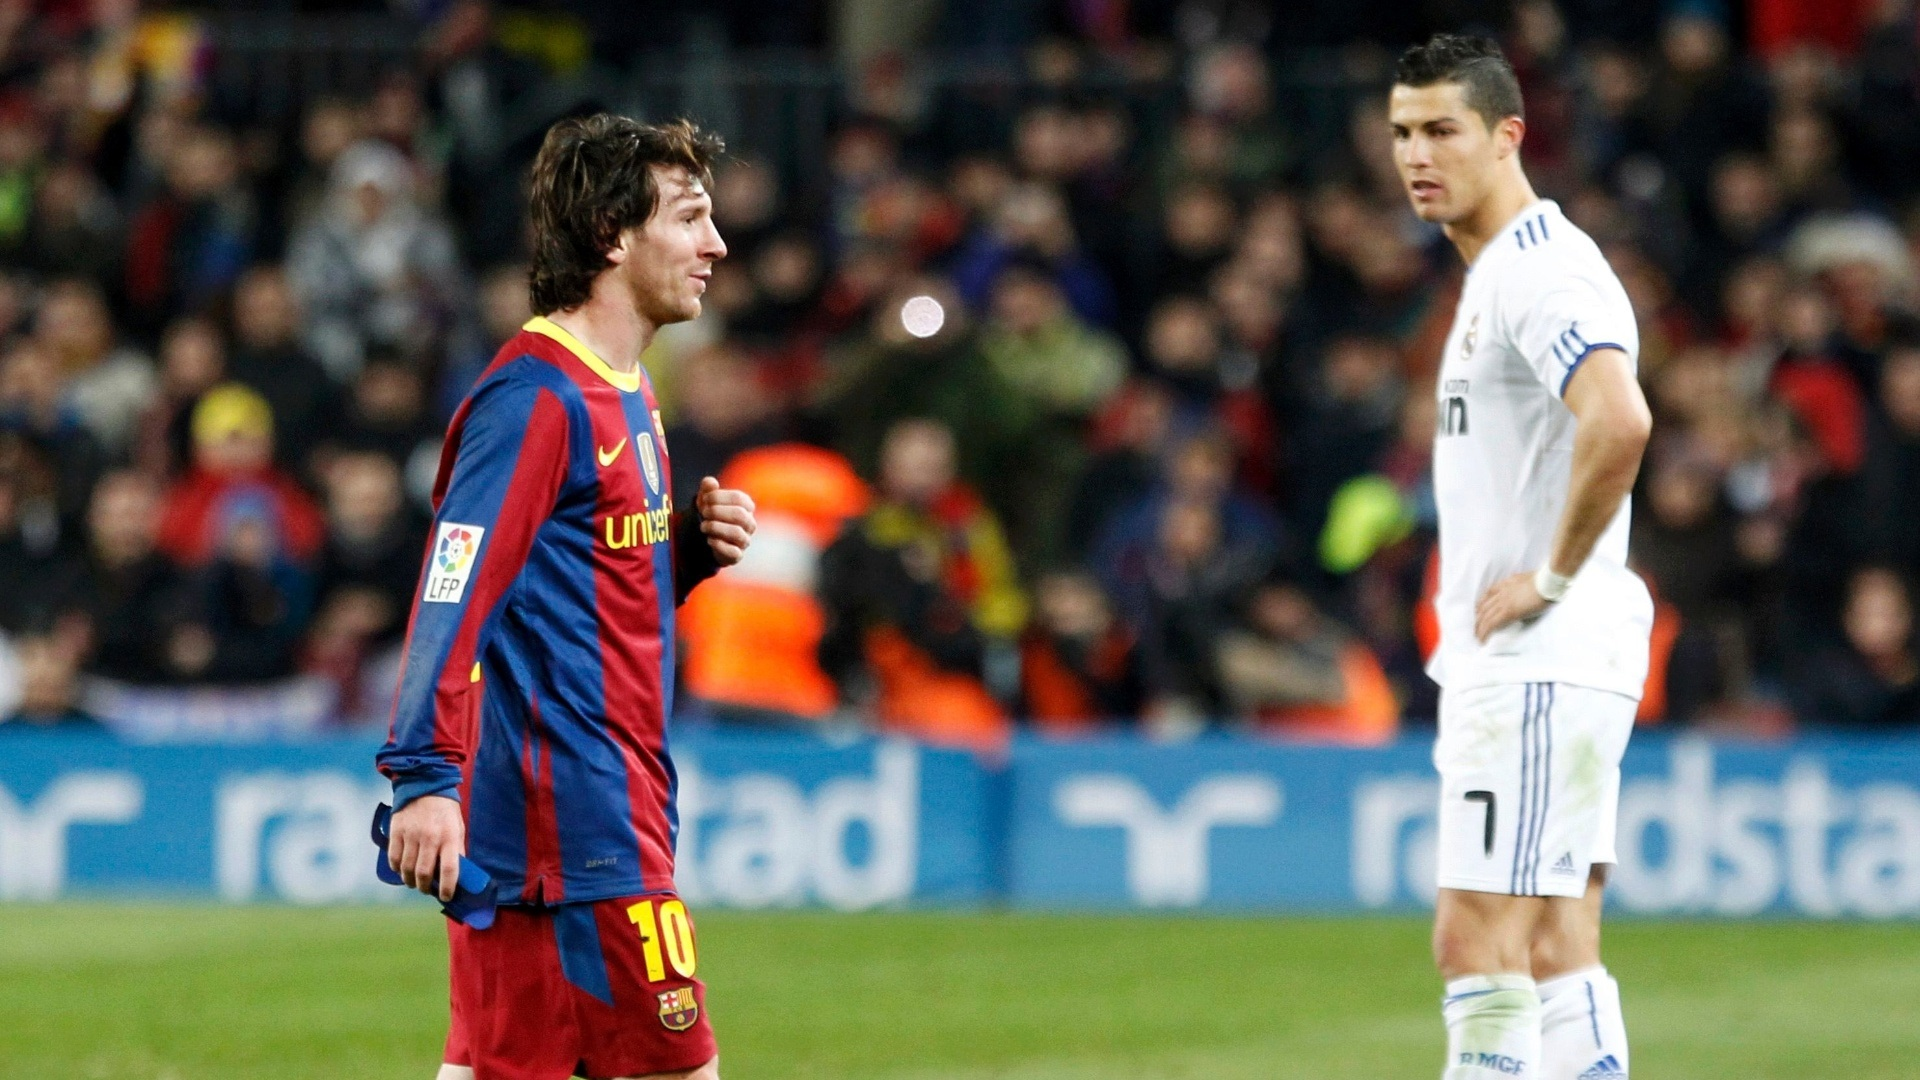 Messi Im not interested in a rivalry with Cristiano Ronaldo 1920x1080